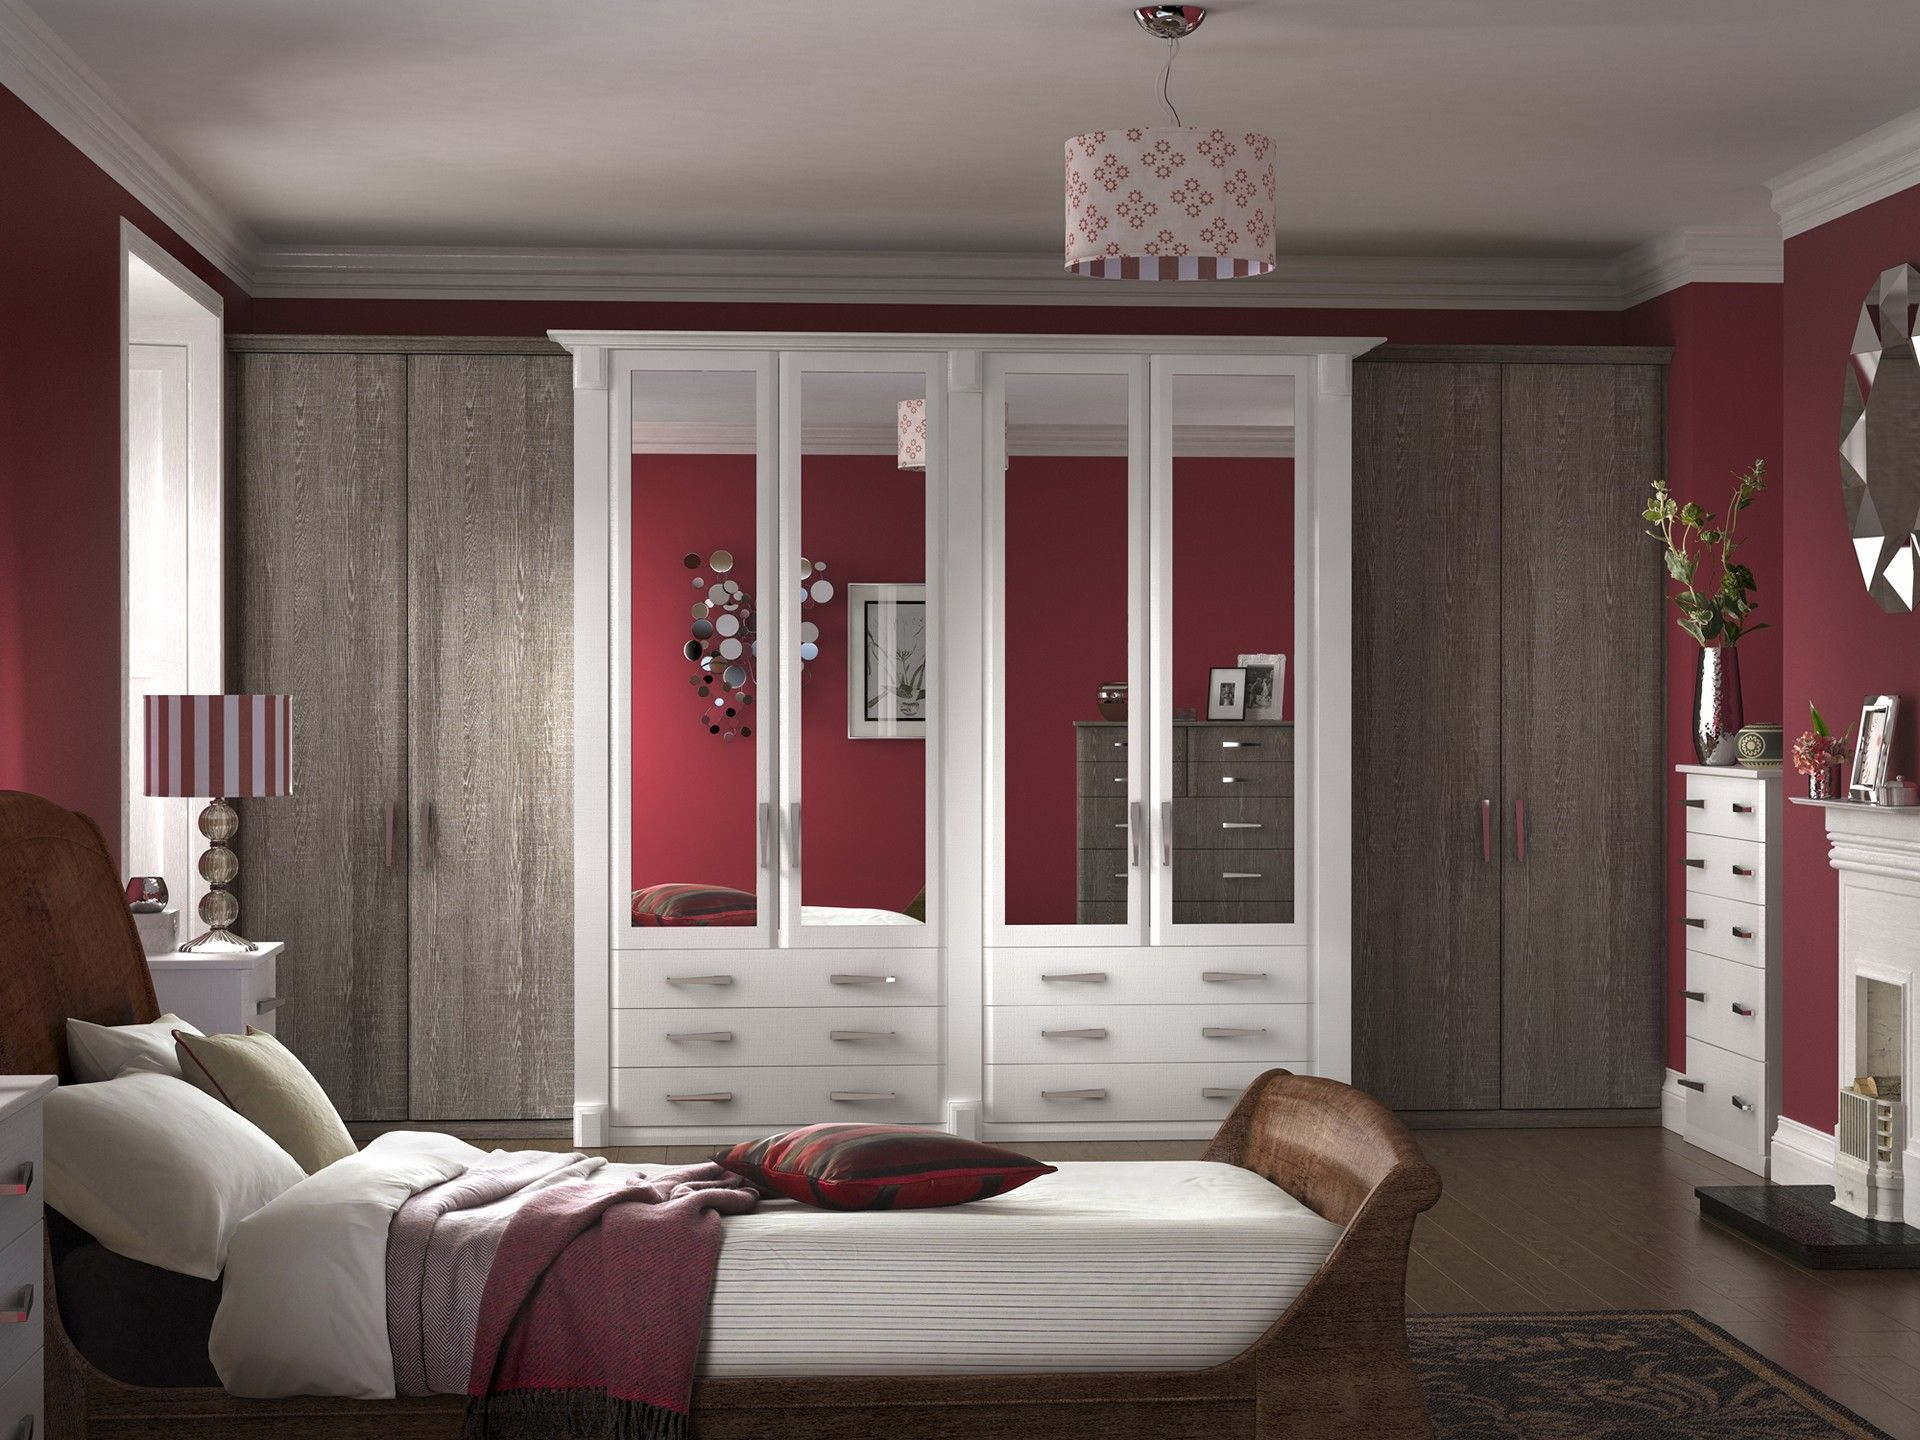 Small bedroom design ideas for couples with red and white color